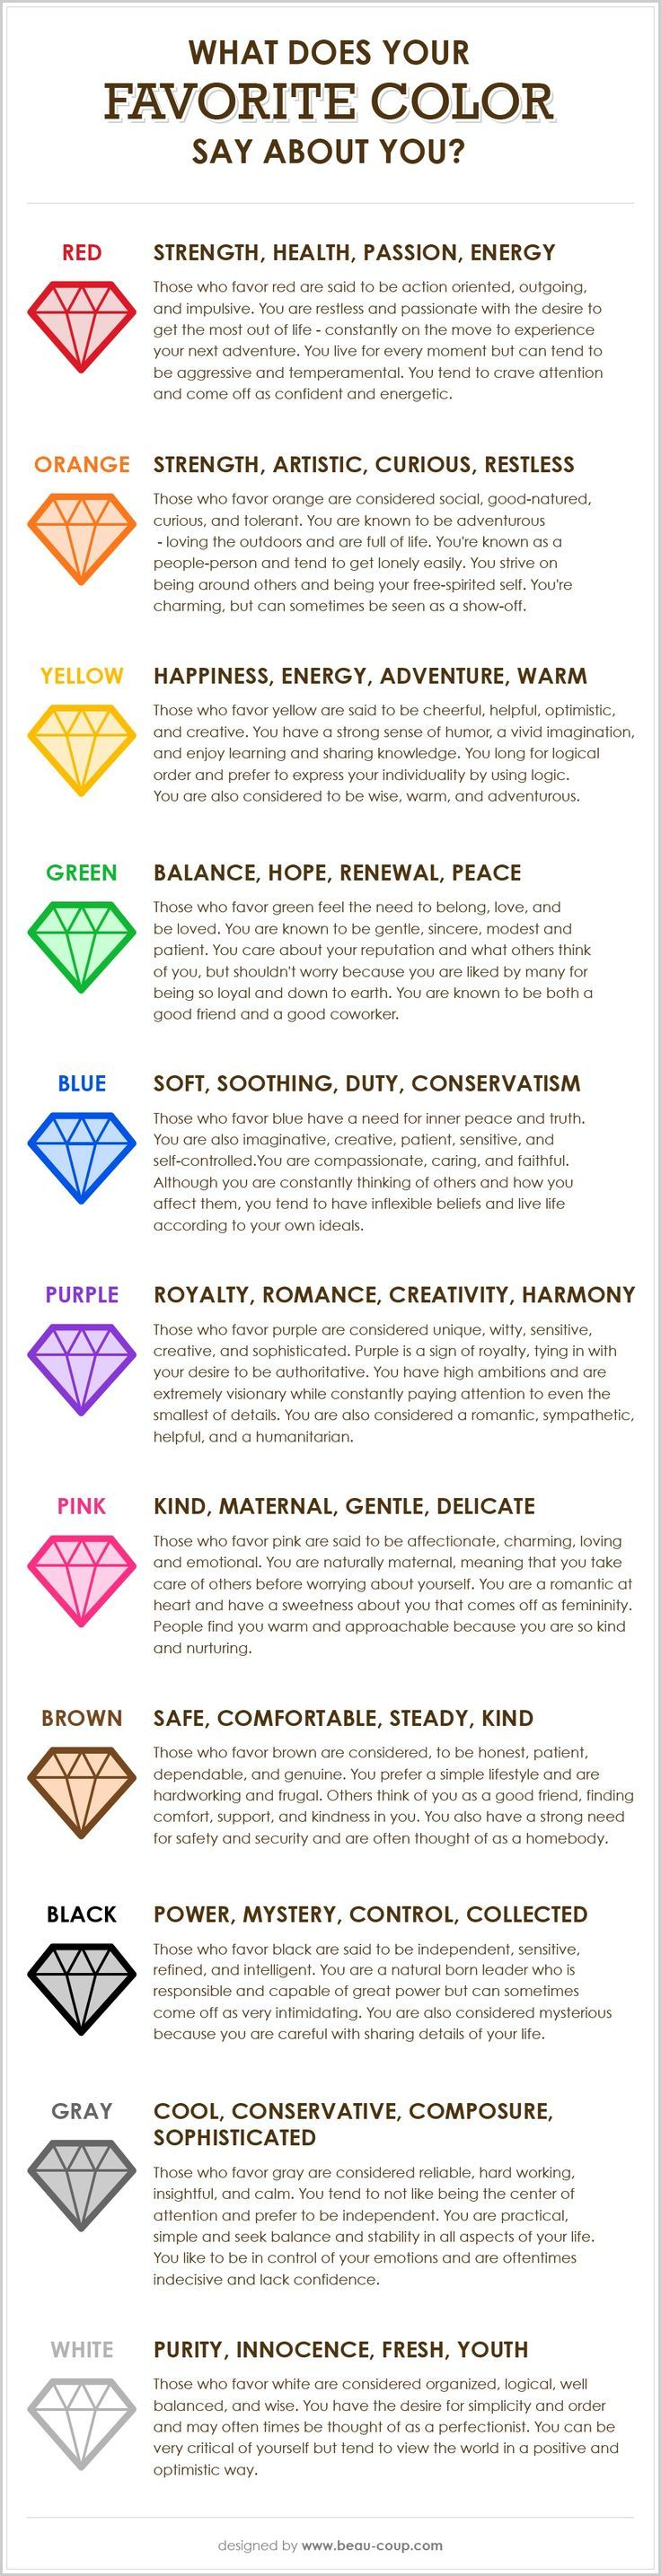 Did you know that colors are known to go along with certain feelings and qualities? Have you ever thought about what your favorite color says about your persona  #color #colour